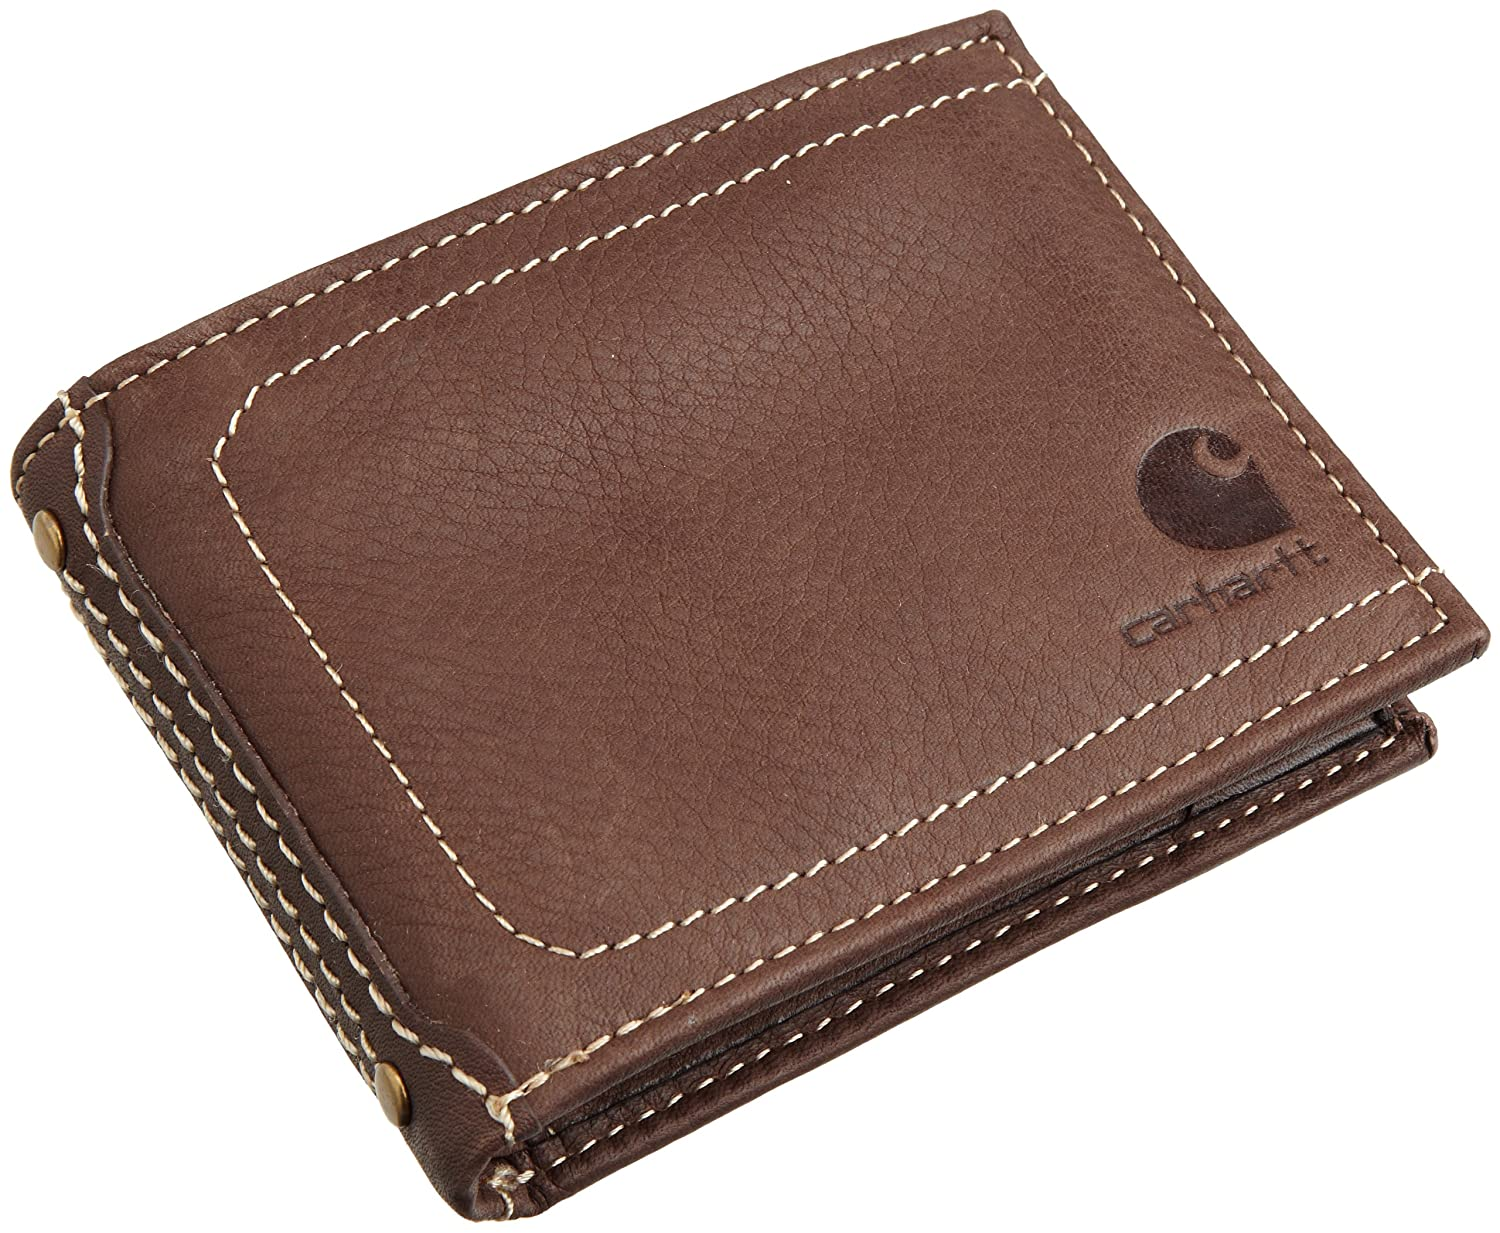 Carhartt Men's Passcase Wallet, Brown, One Size The American Belt Company - Carharrt M 61-2201-20-Brown-One Size